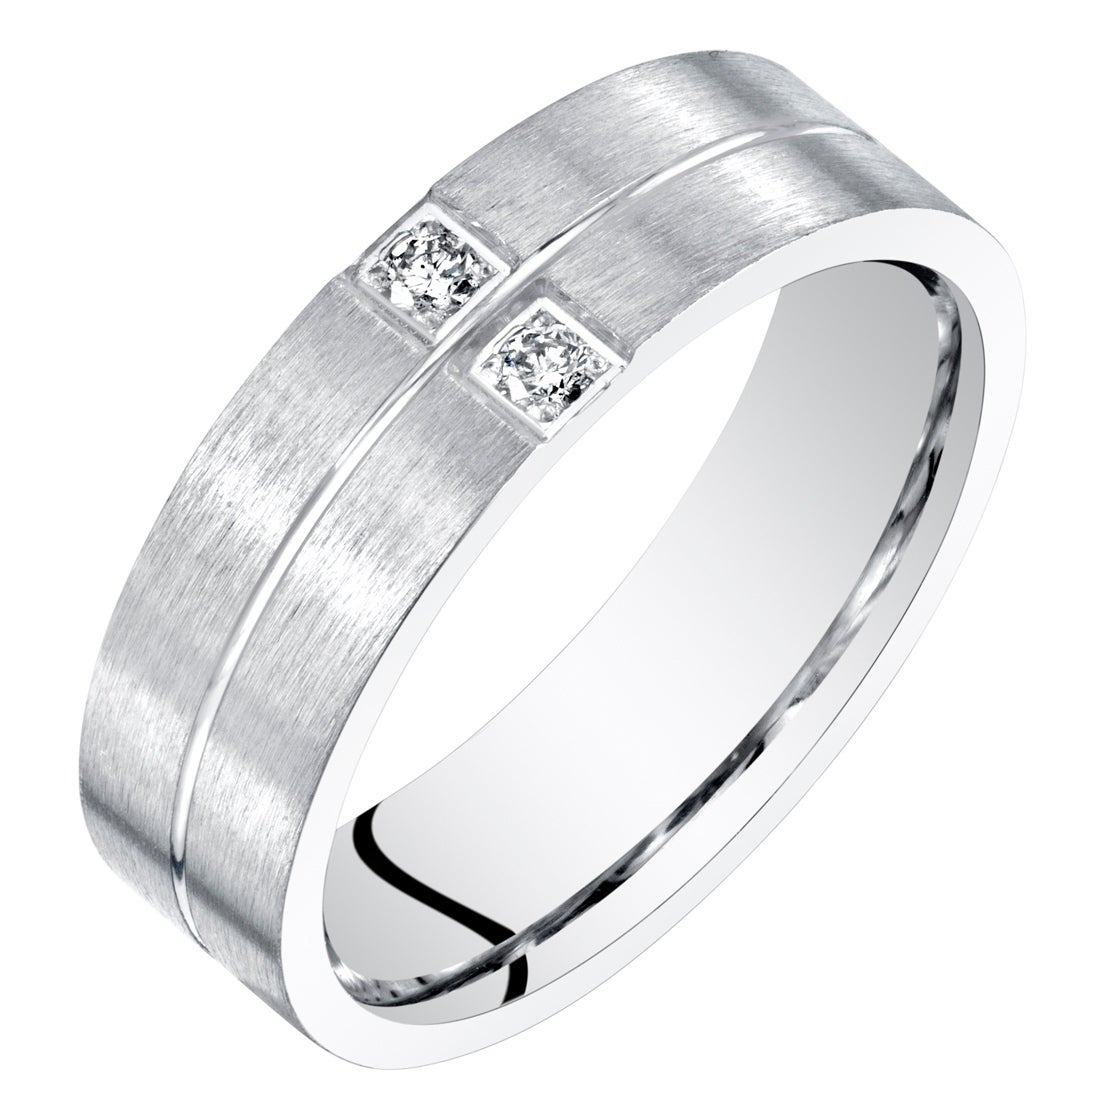 It is just an image of Mens Genuine Diamond Wedding Ring Band Sterling Silver Comfort Fit 42mm Sizes 42 to 42